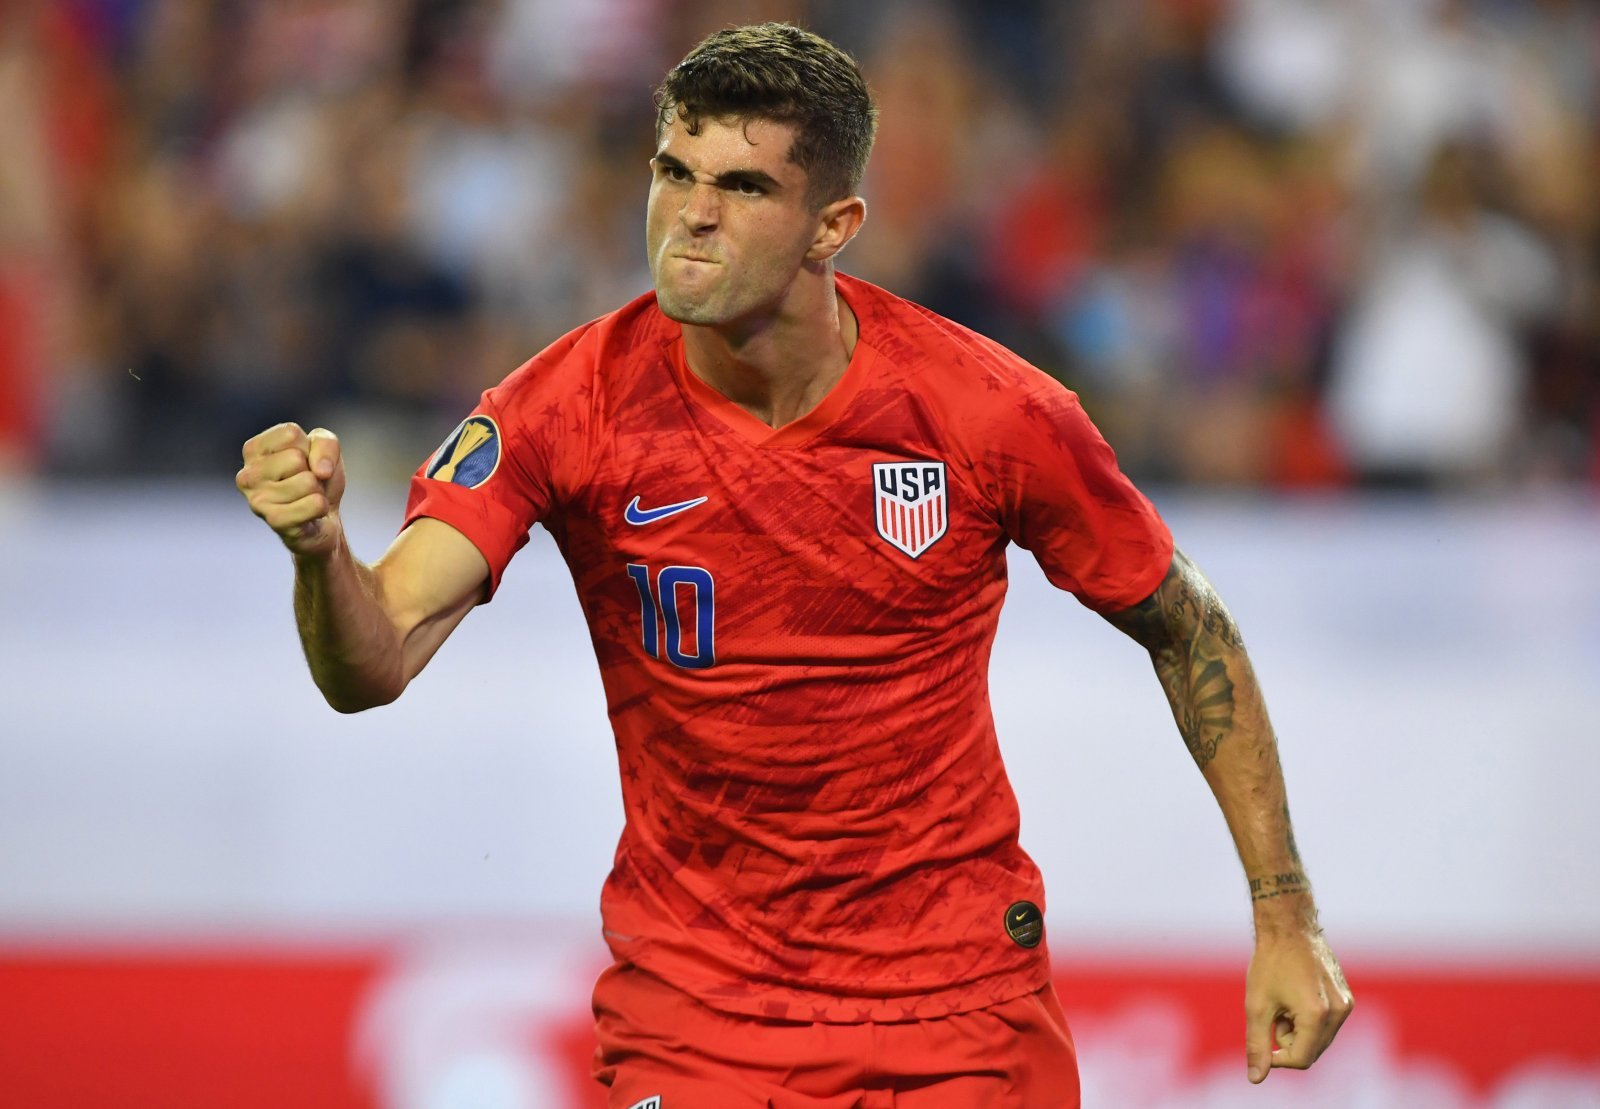 Chelsea: Christian Pulisic already winning supporters over with his dedication